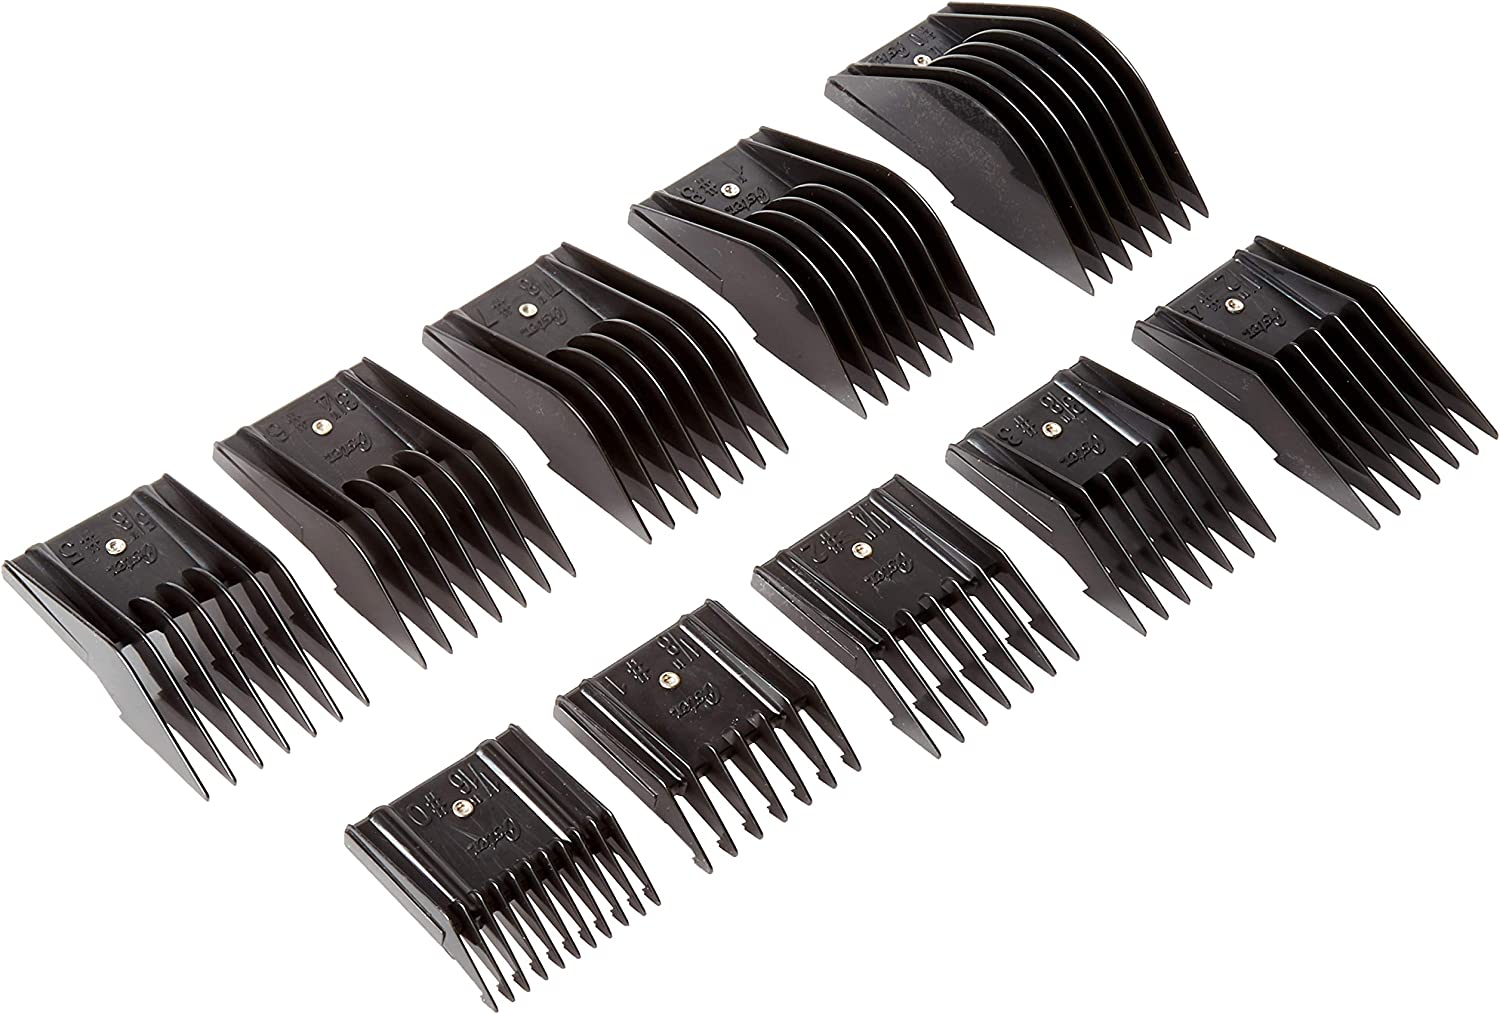 Oster 76926-900 10 Universal Comb Set Attachments Guide